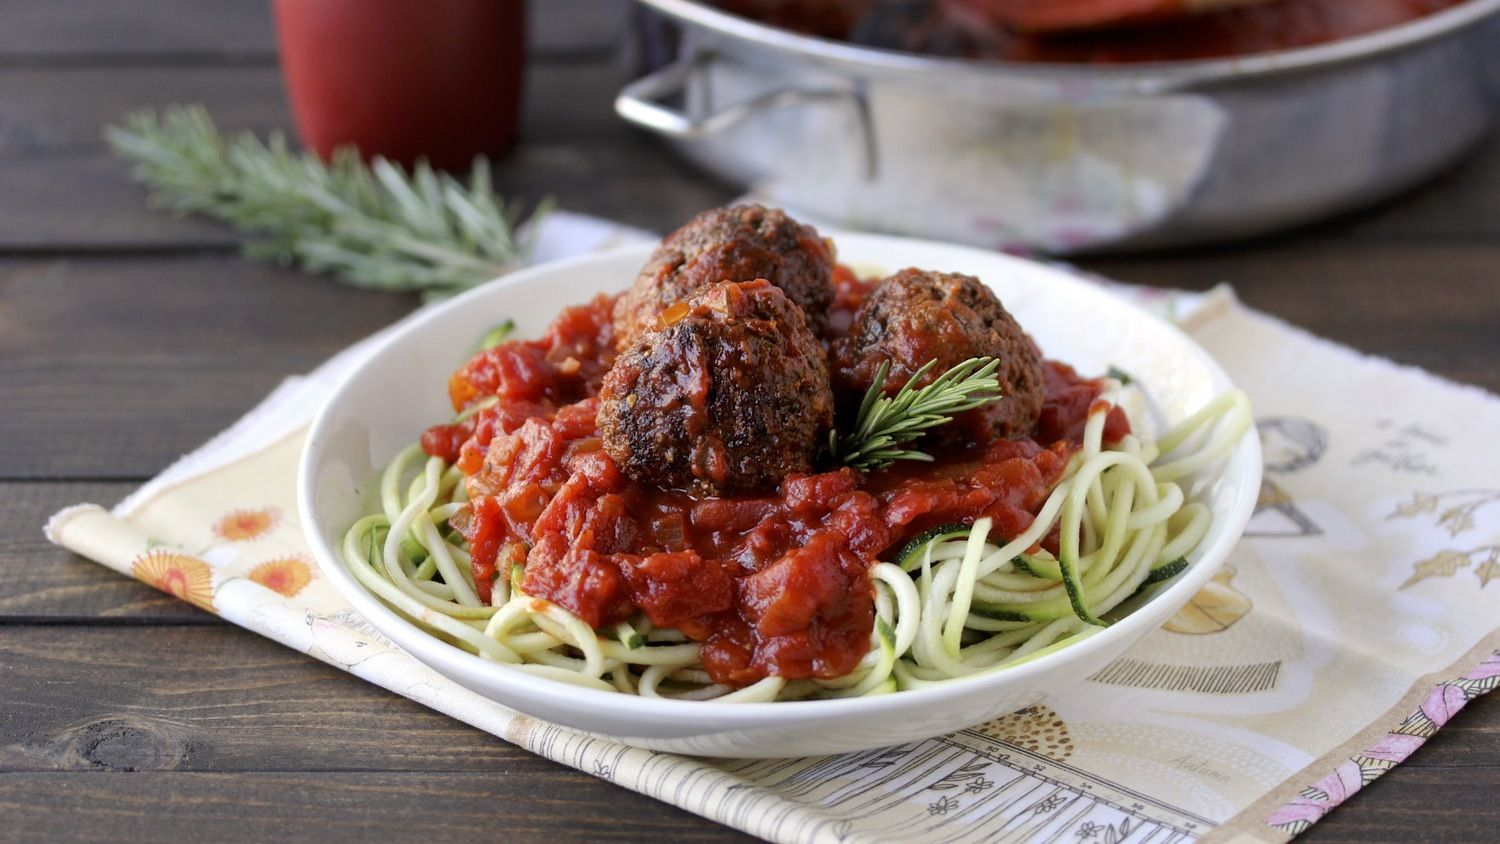 Chia Meatballs with Zucchini Noodles